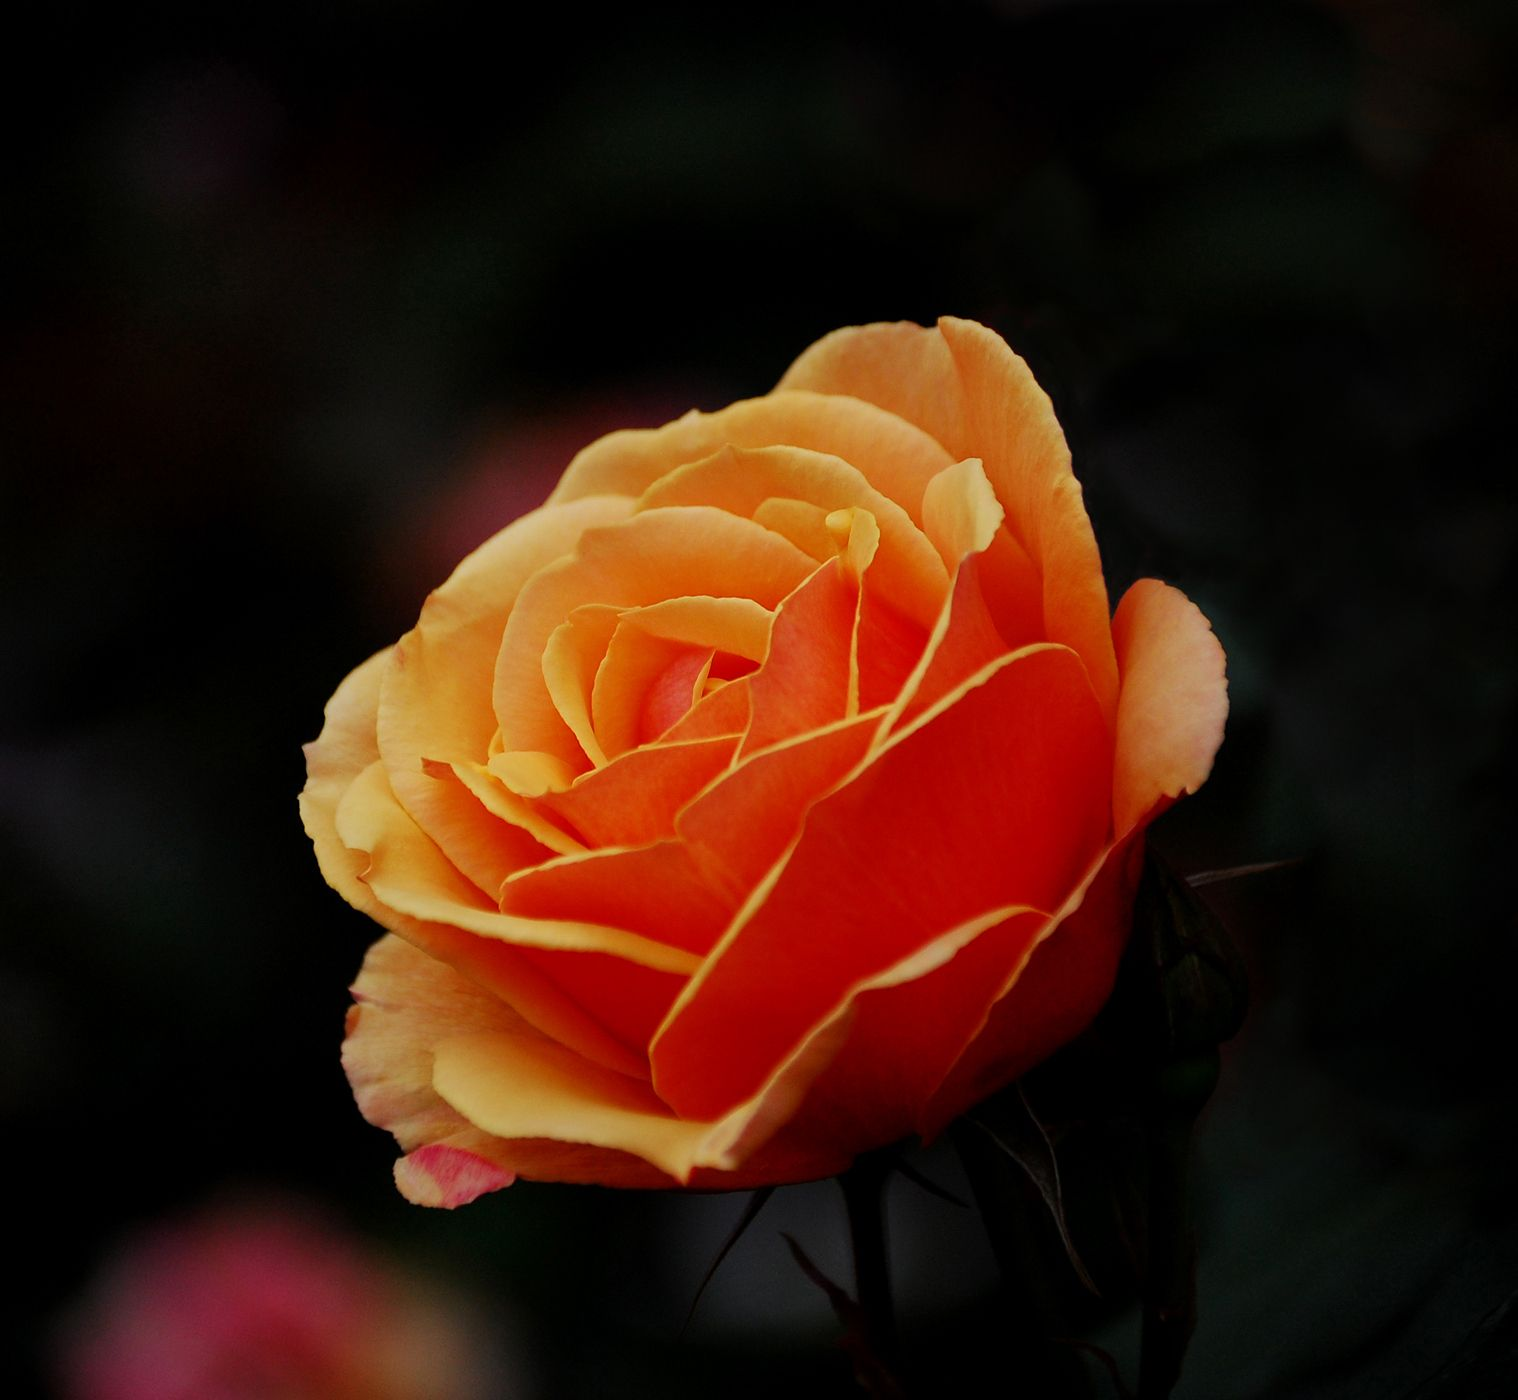 Orange Roses Are Very Pretty Rose Tattoos Beautiful Roses Orange Roses